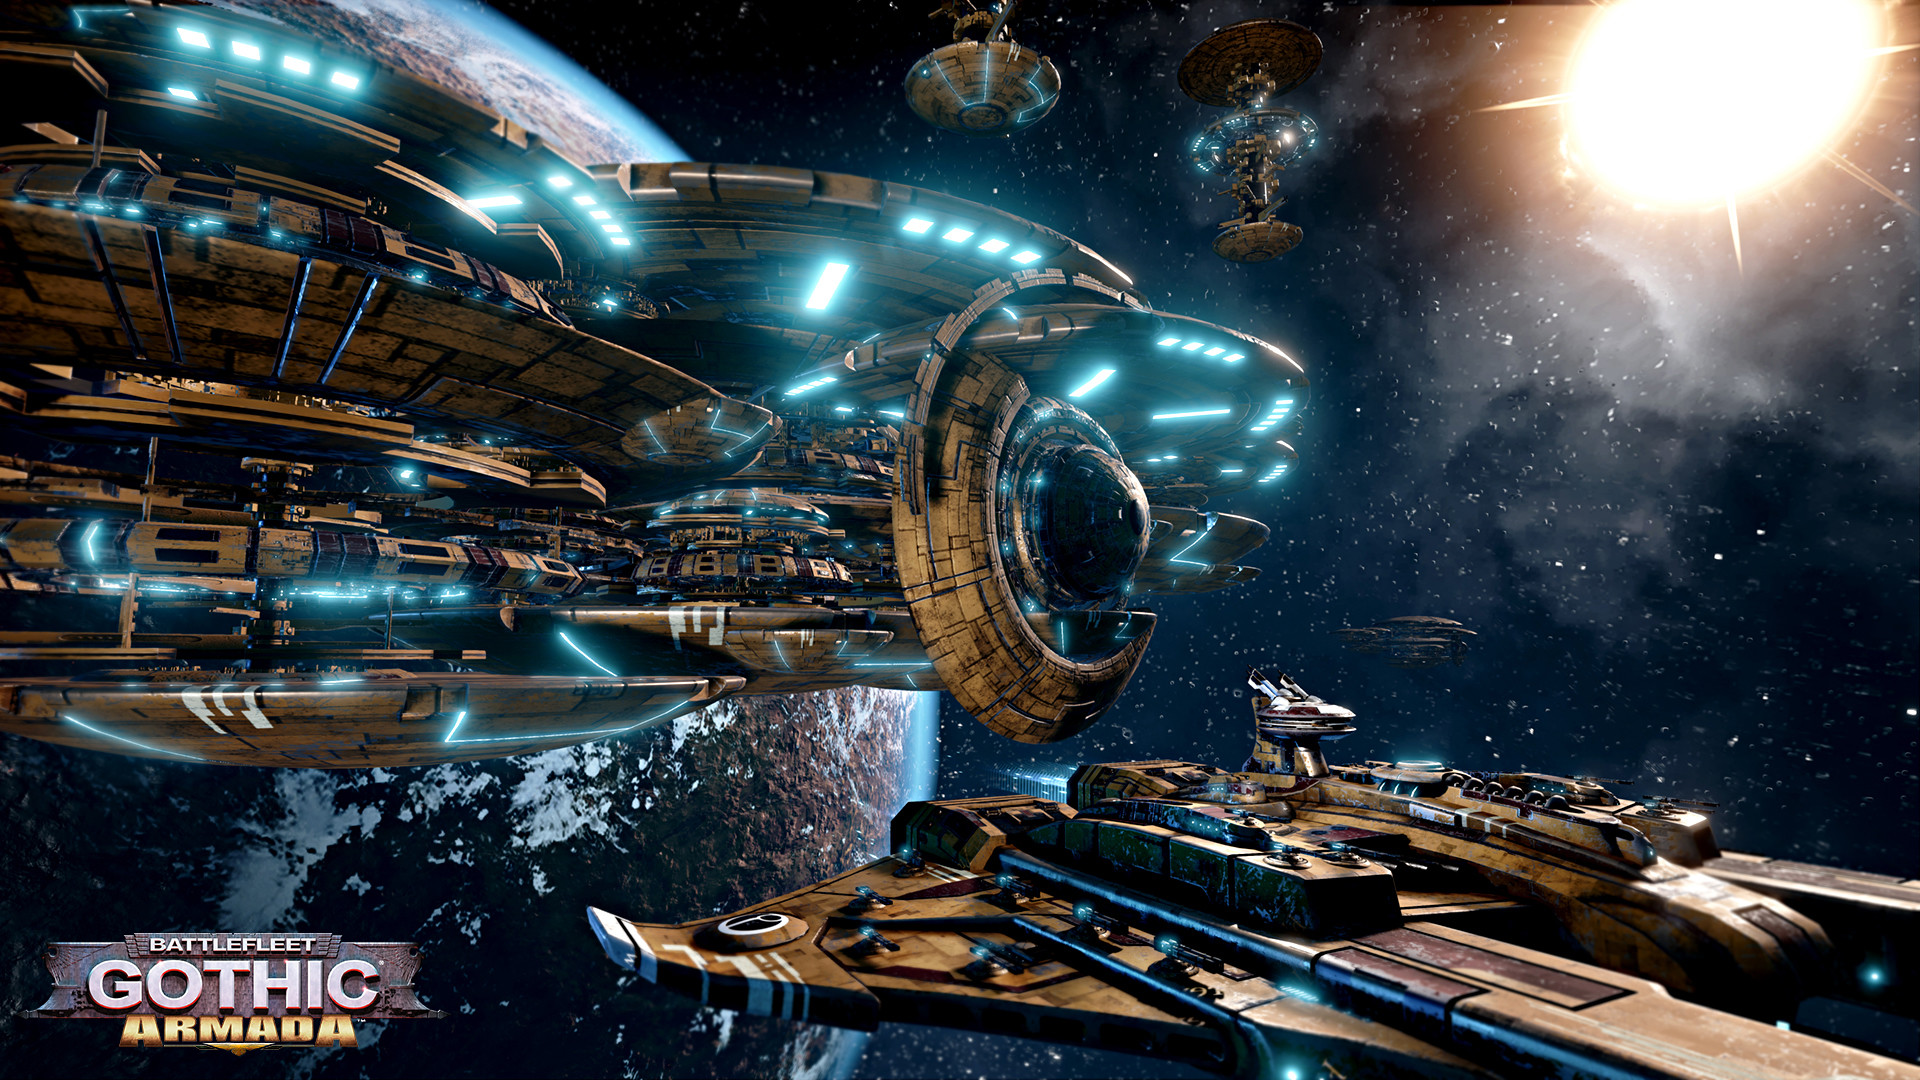 Res: 1920x1080, Battlefleet Gothic Armada - Das Sternenreich der Tau DLC [PC Code - Steam]:  Amazon.de: Games